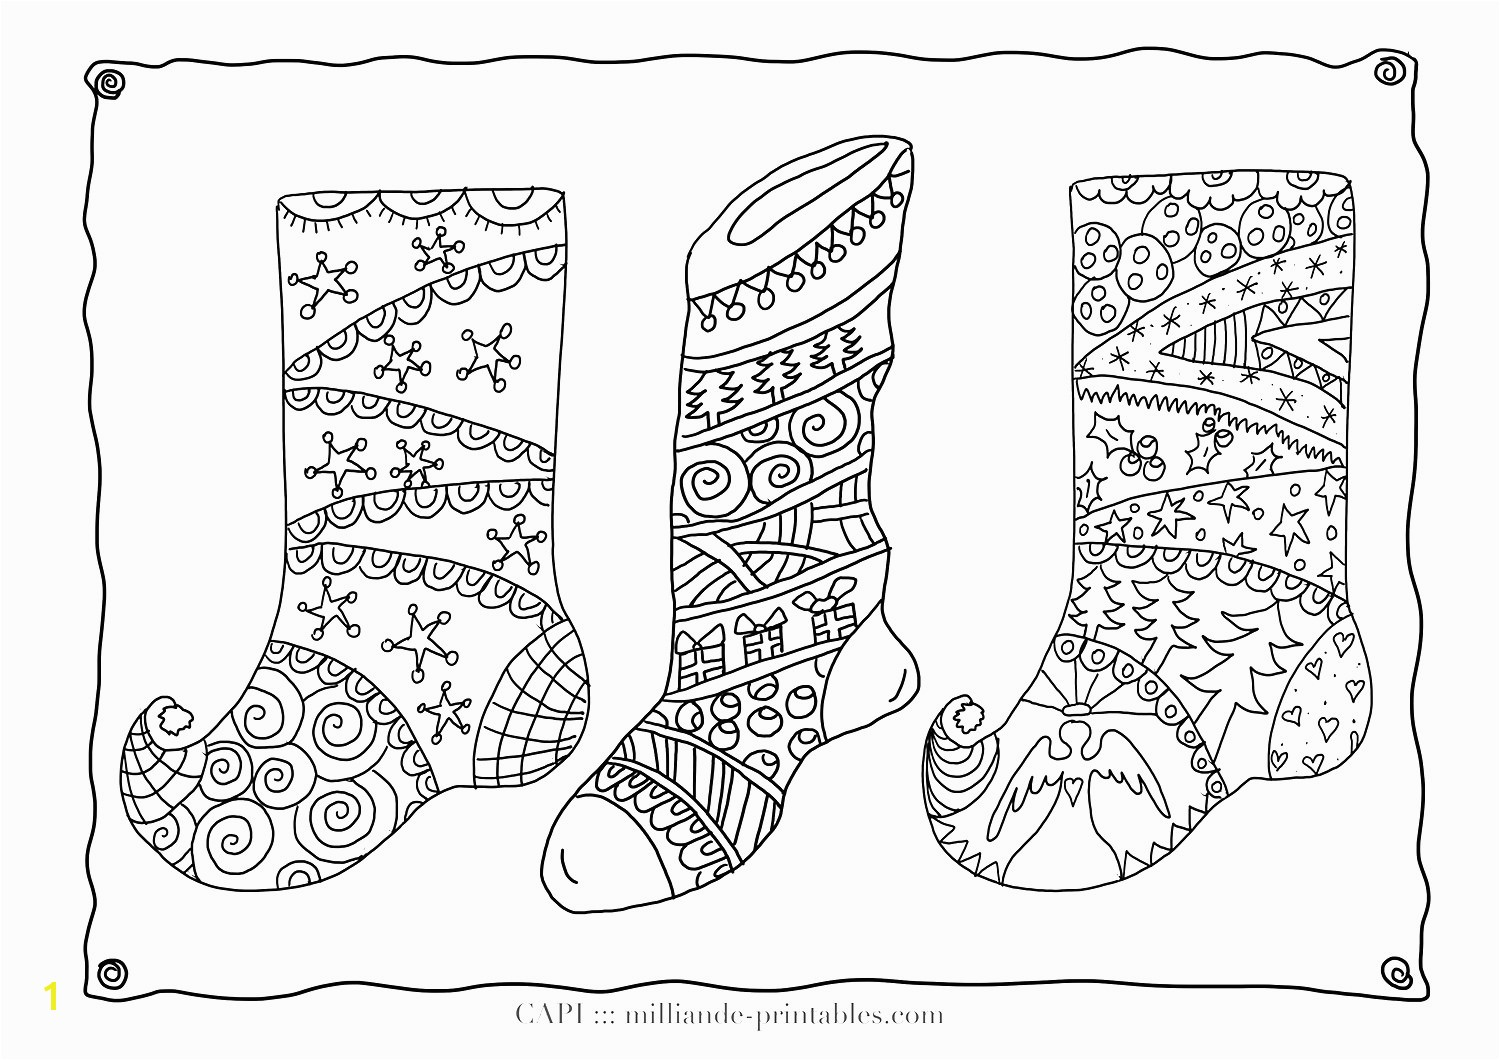 Open and print this Christian coloring page